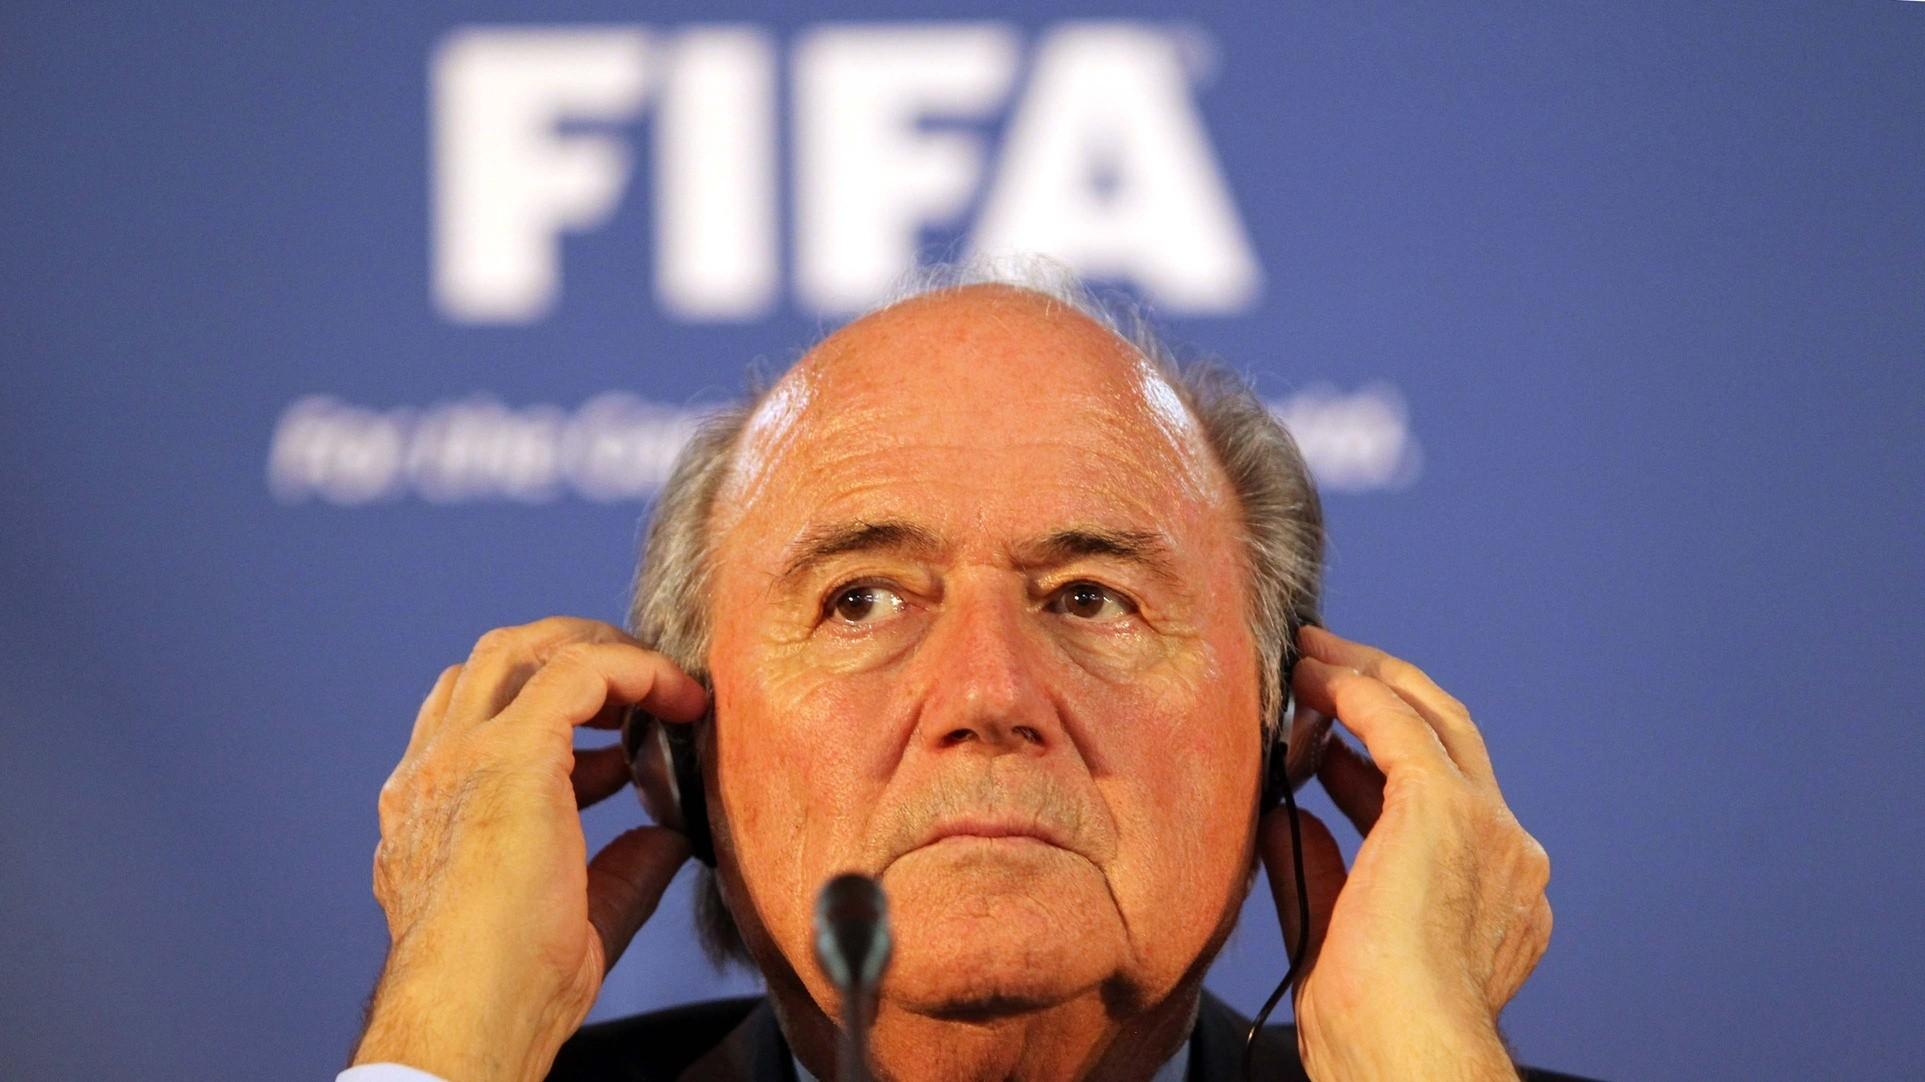 Sepp Blatter Offers New Definition of Irony, Calls For Iran to be Less Sexist